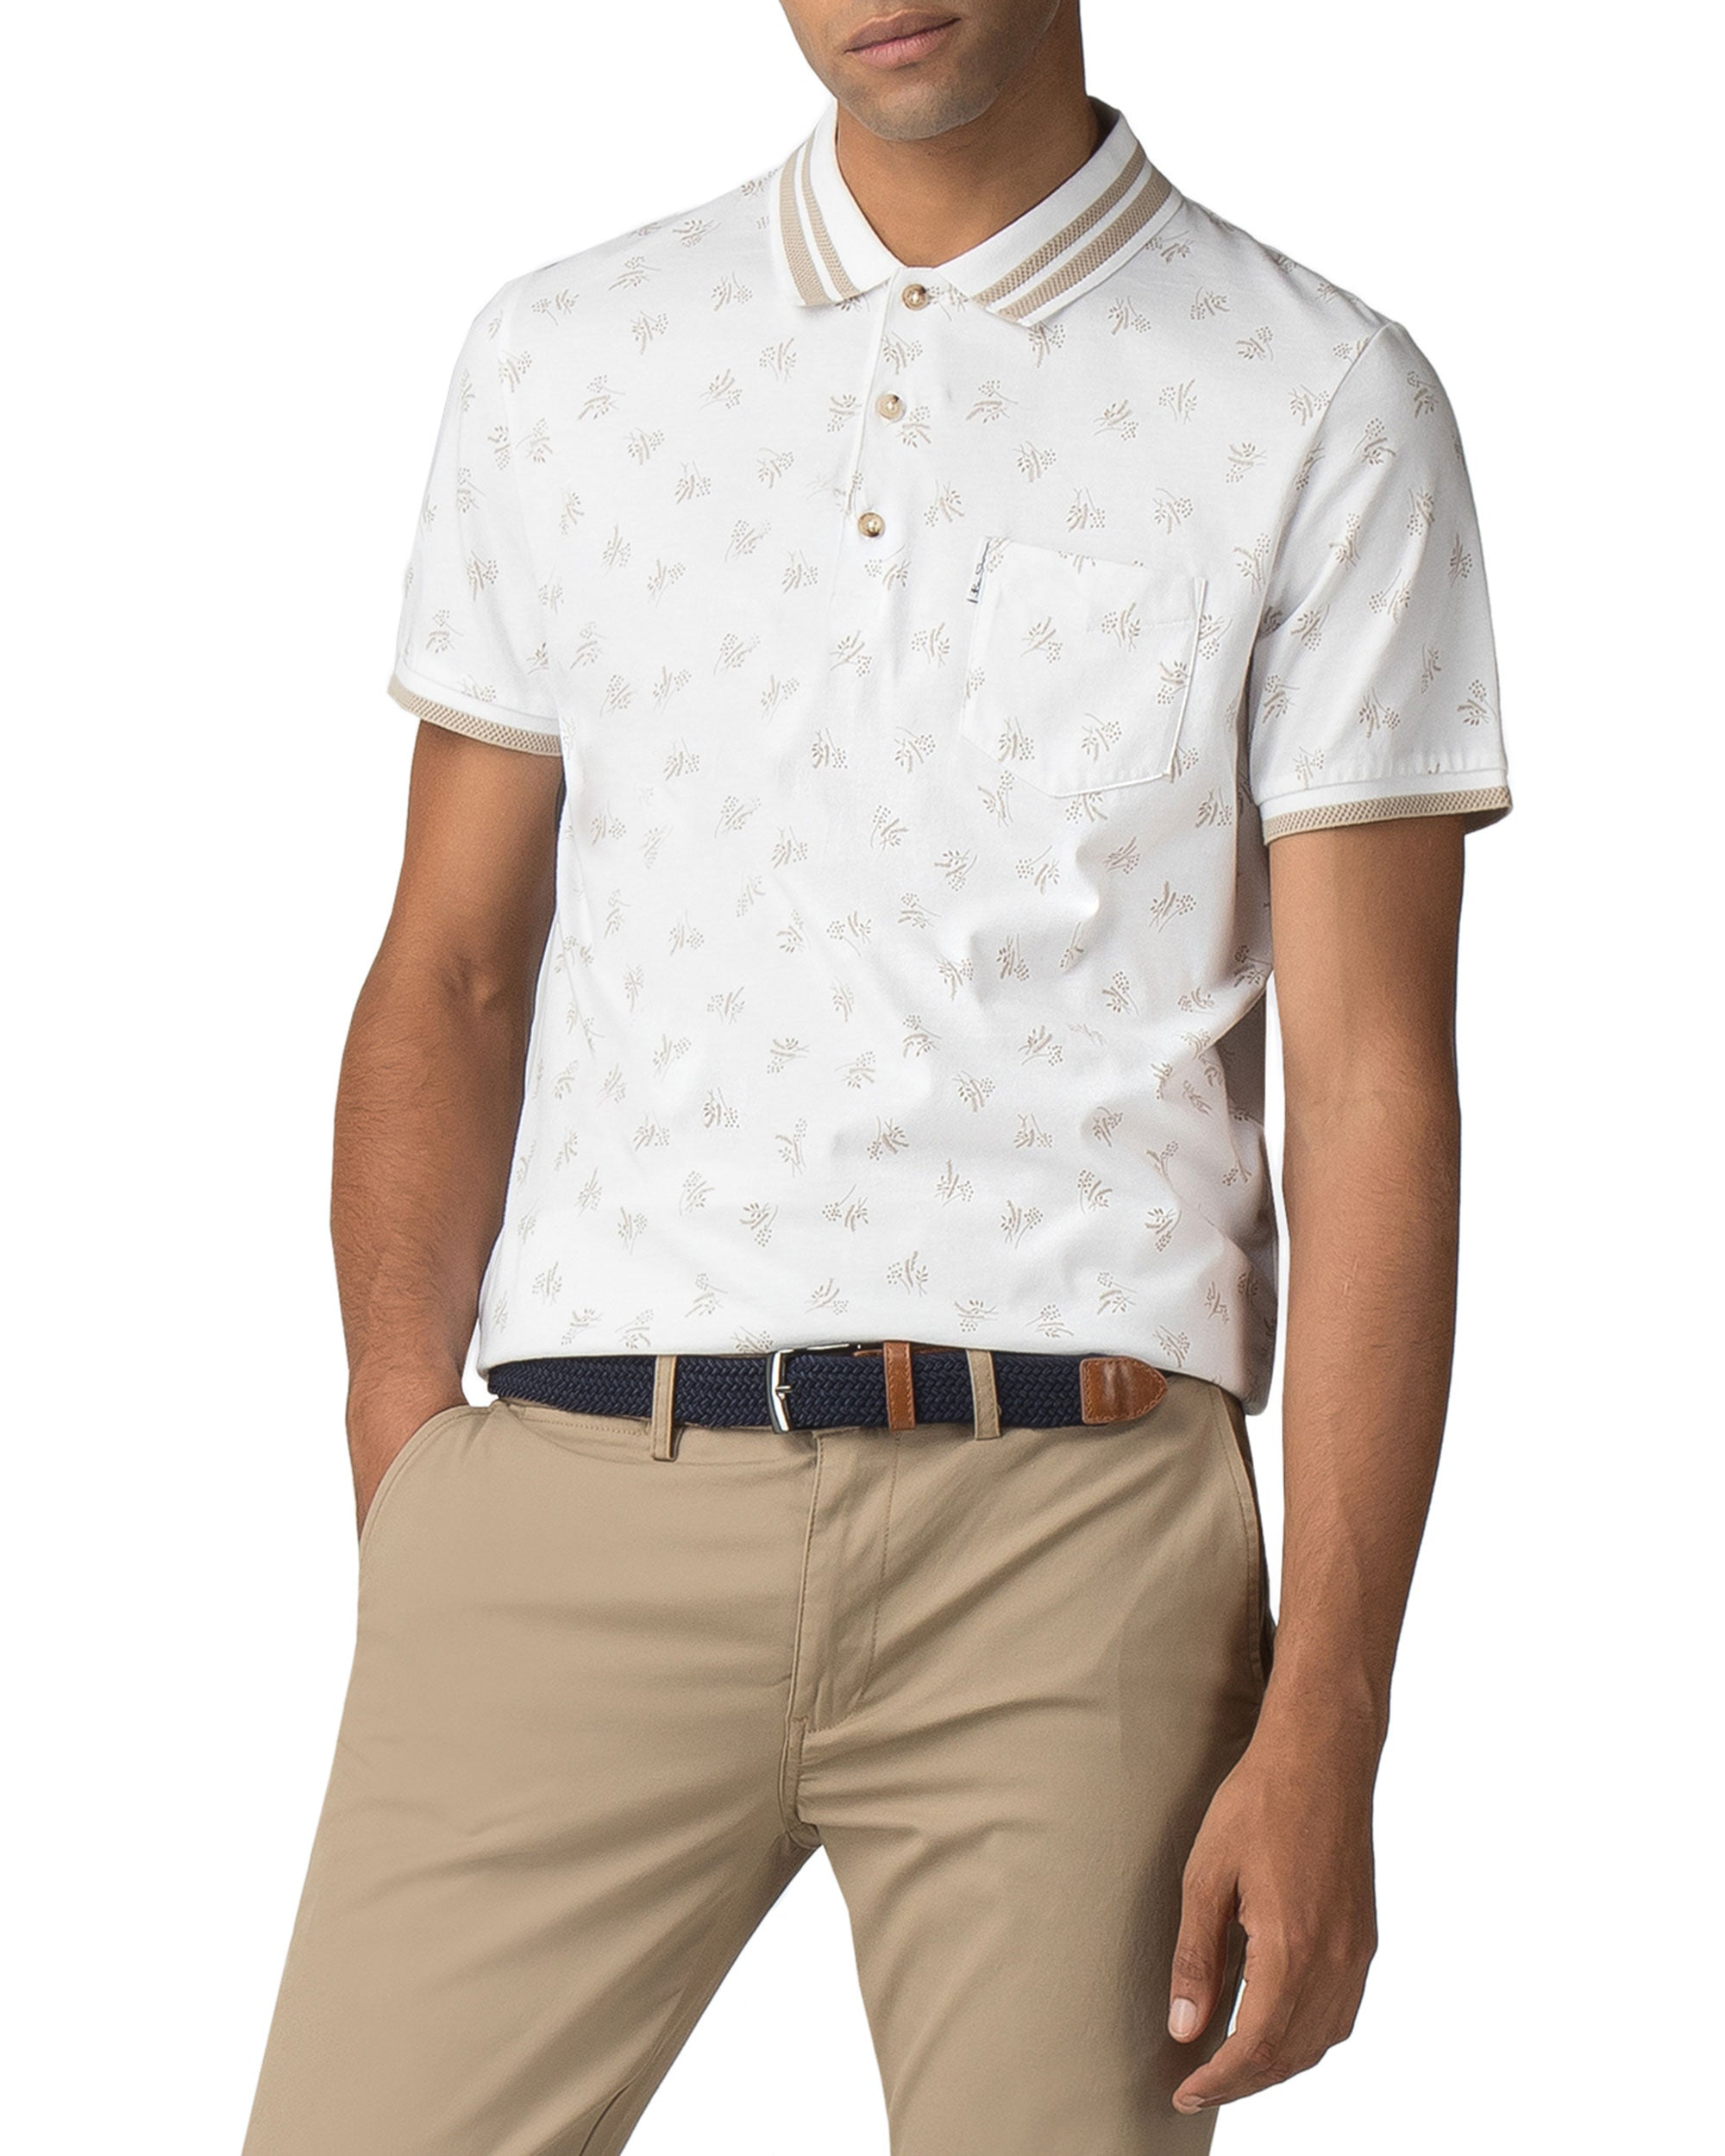 Archive Print Polo - White